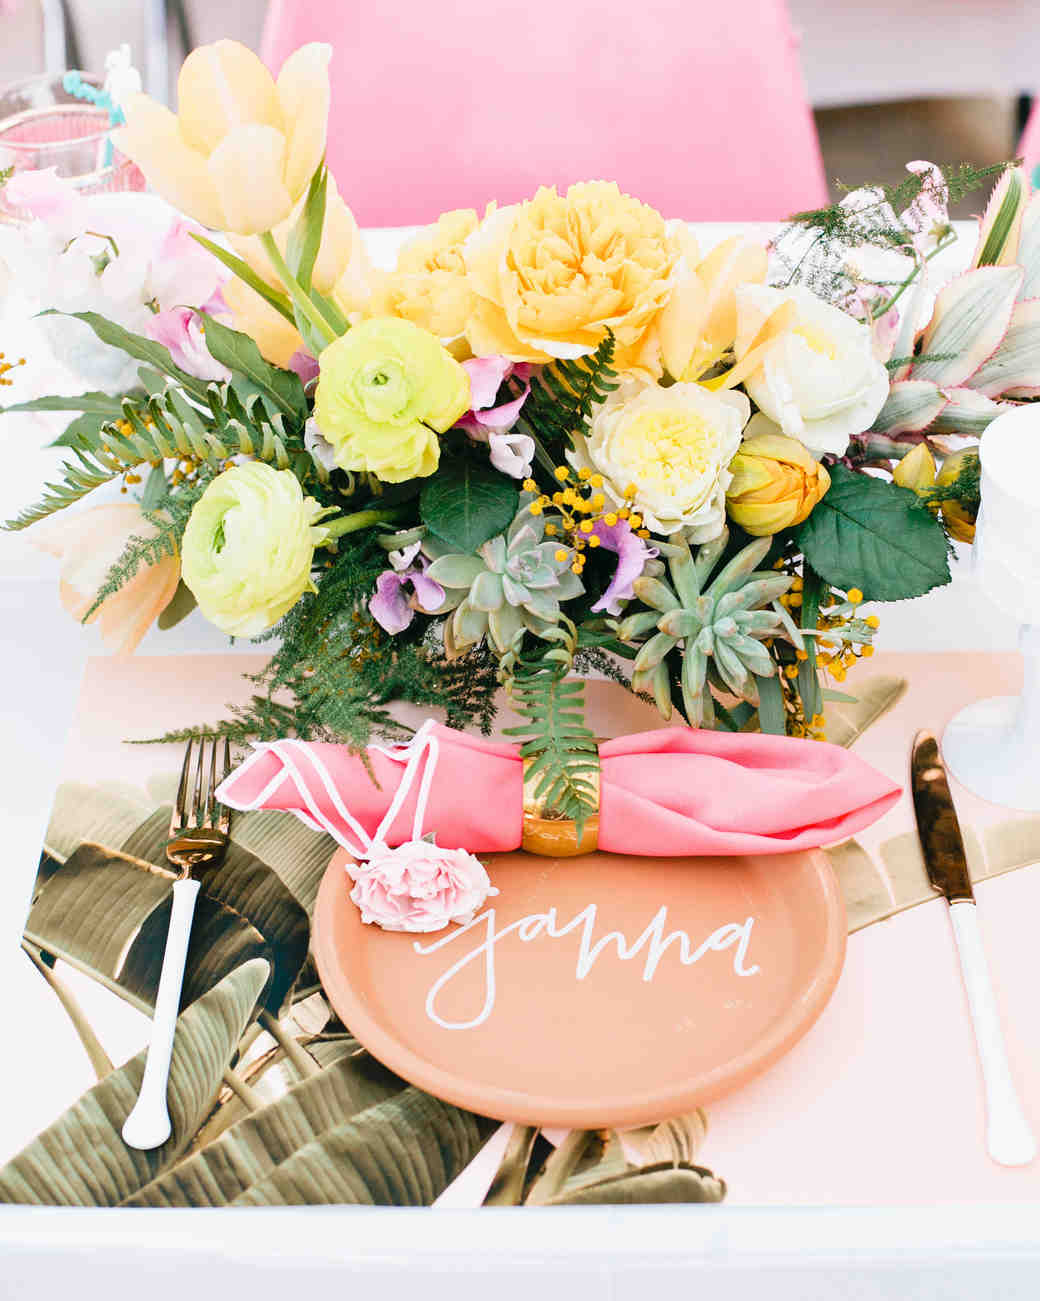 2cd2f9d8af9 25 Bridal Shower Centerpieces the Bride-to-Be Will Love | Martha Stewart  Weddings